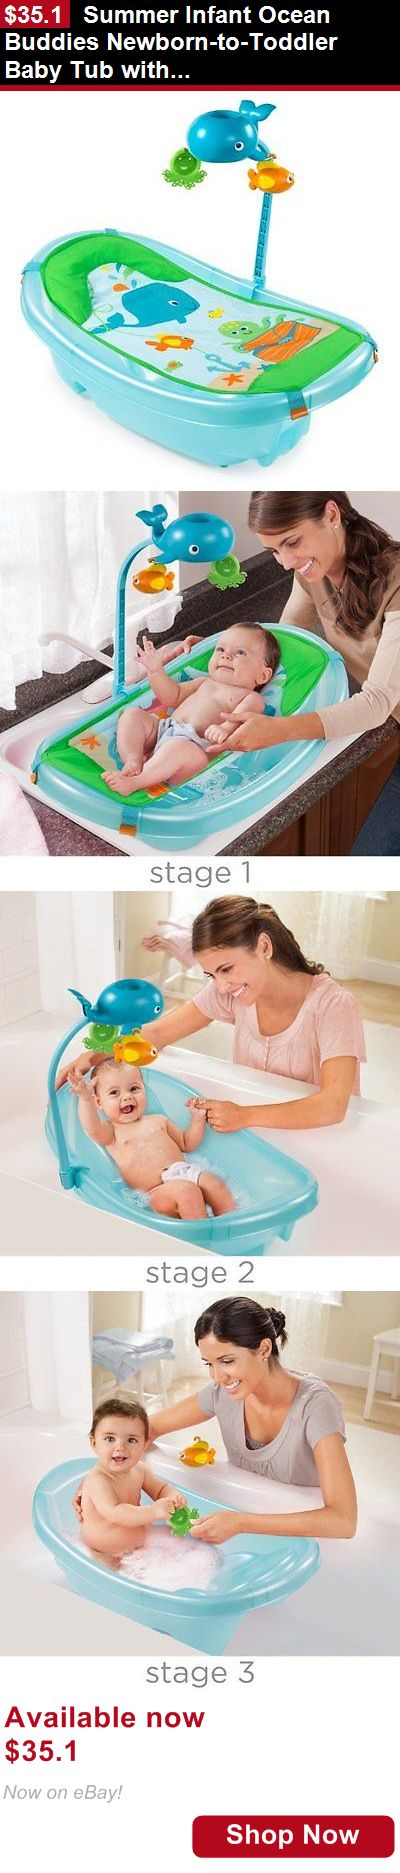 Baby Bath Tubs: Summer Infant Ocean Buddies Newborn-To-Toddler Baby Tub With Toy Bar BUY IT NOW ONLY: $35.1